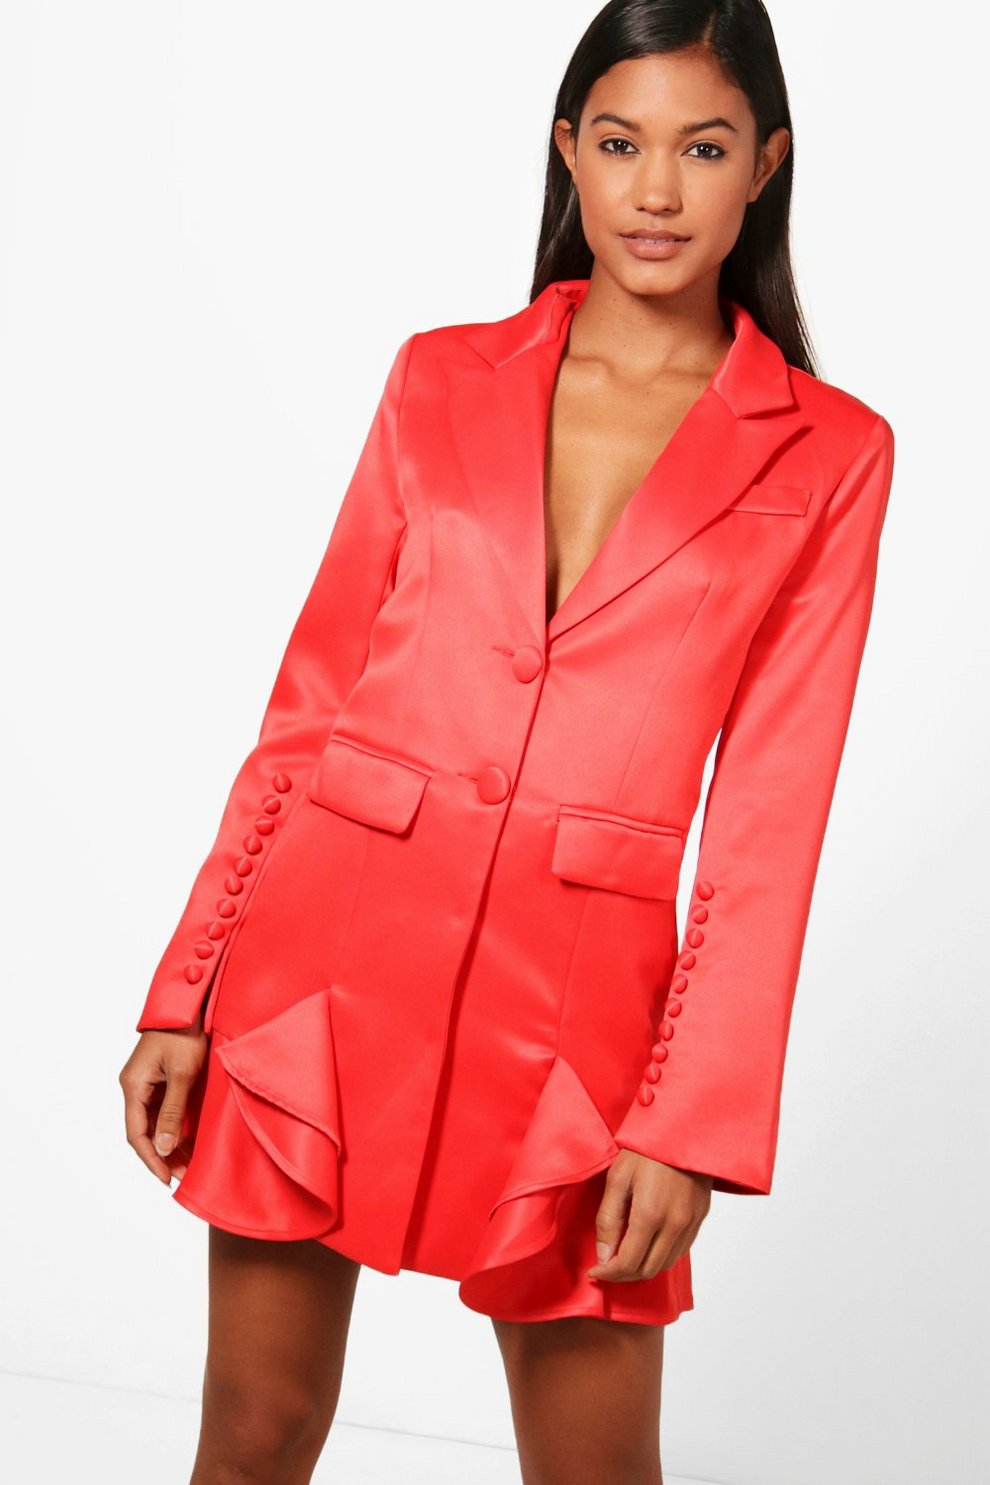 Boohoo Boutqiue Frill Hem Detail Blazer Dress Clearance Pictures Buy Cheap Newest Sale Store Cheap Sale Online Authentic Cheap Price 8p90o3qGp